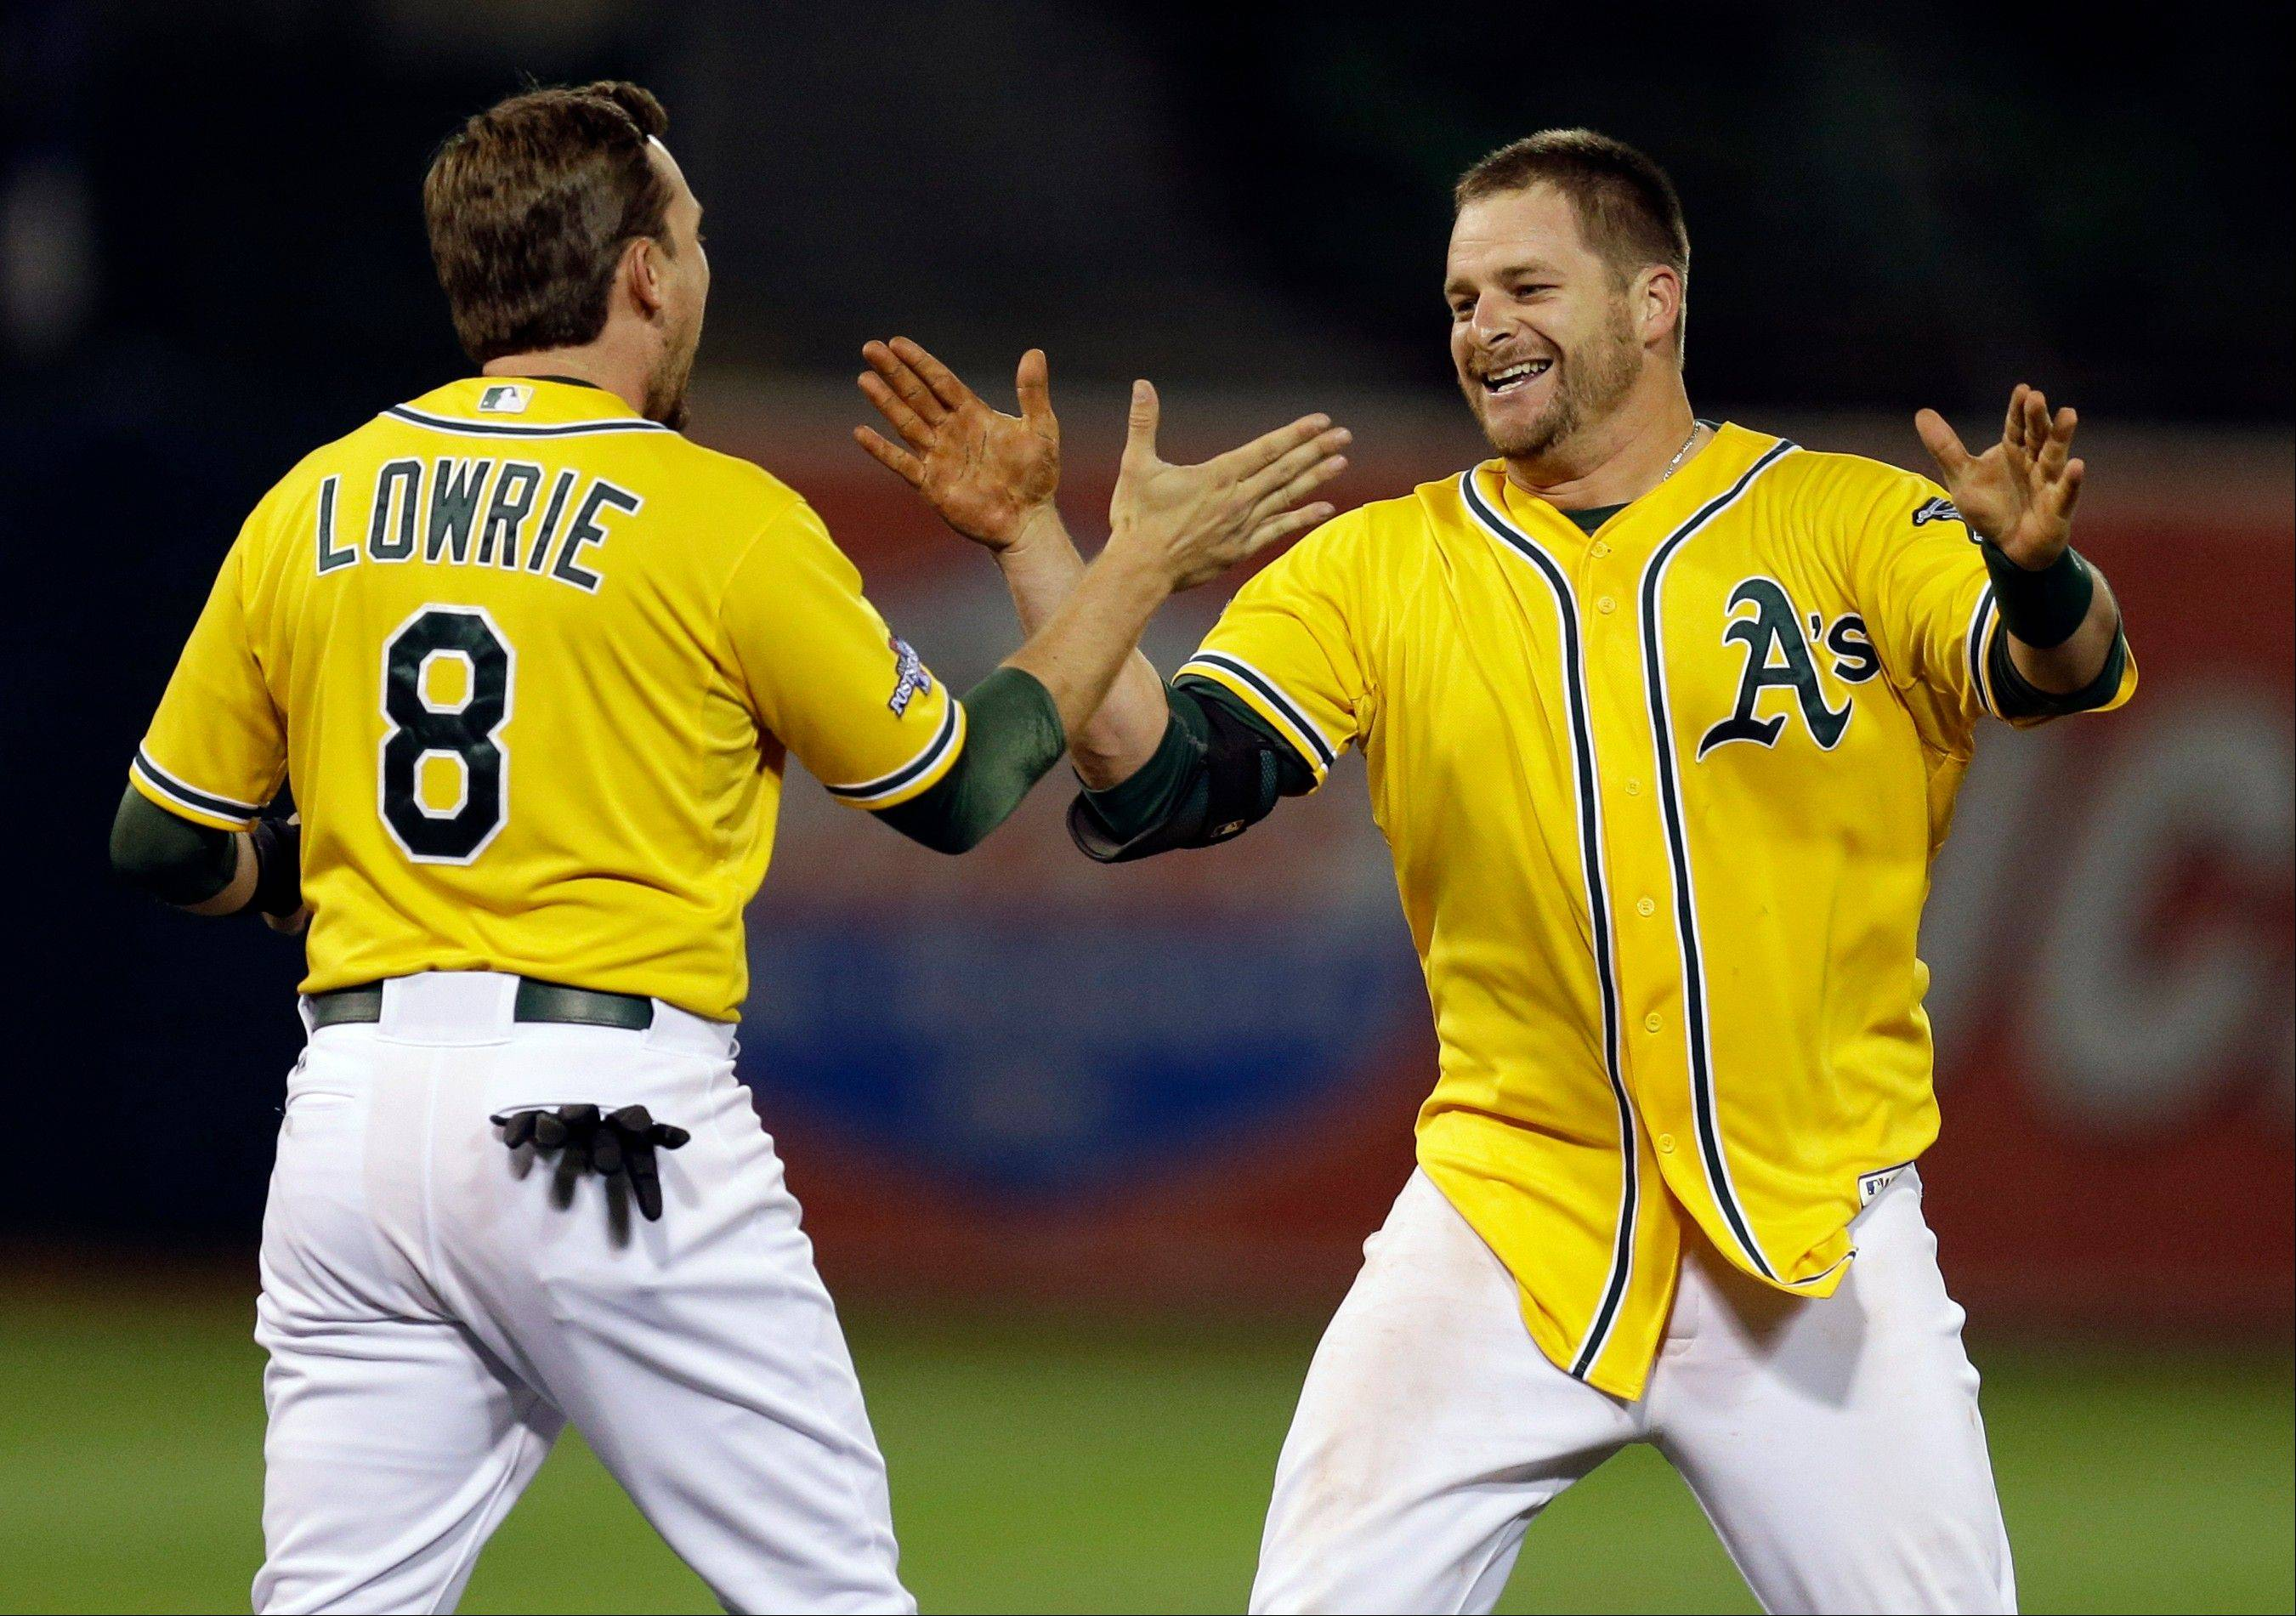 Oakland Athletics Stephen Vogt is congratulated by teammate Jed Lowrie after Vogt